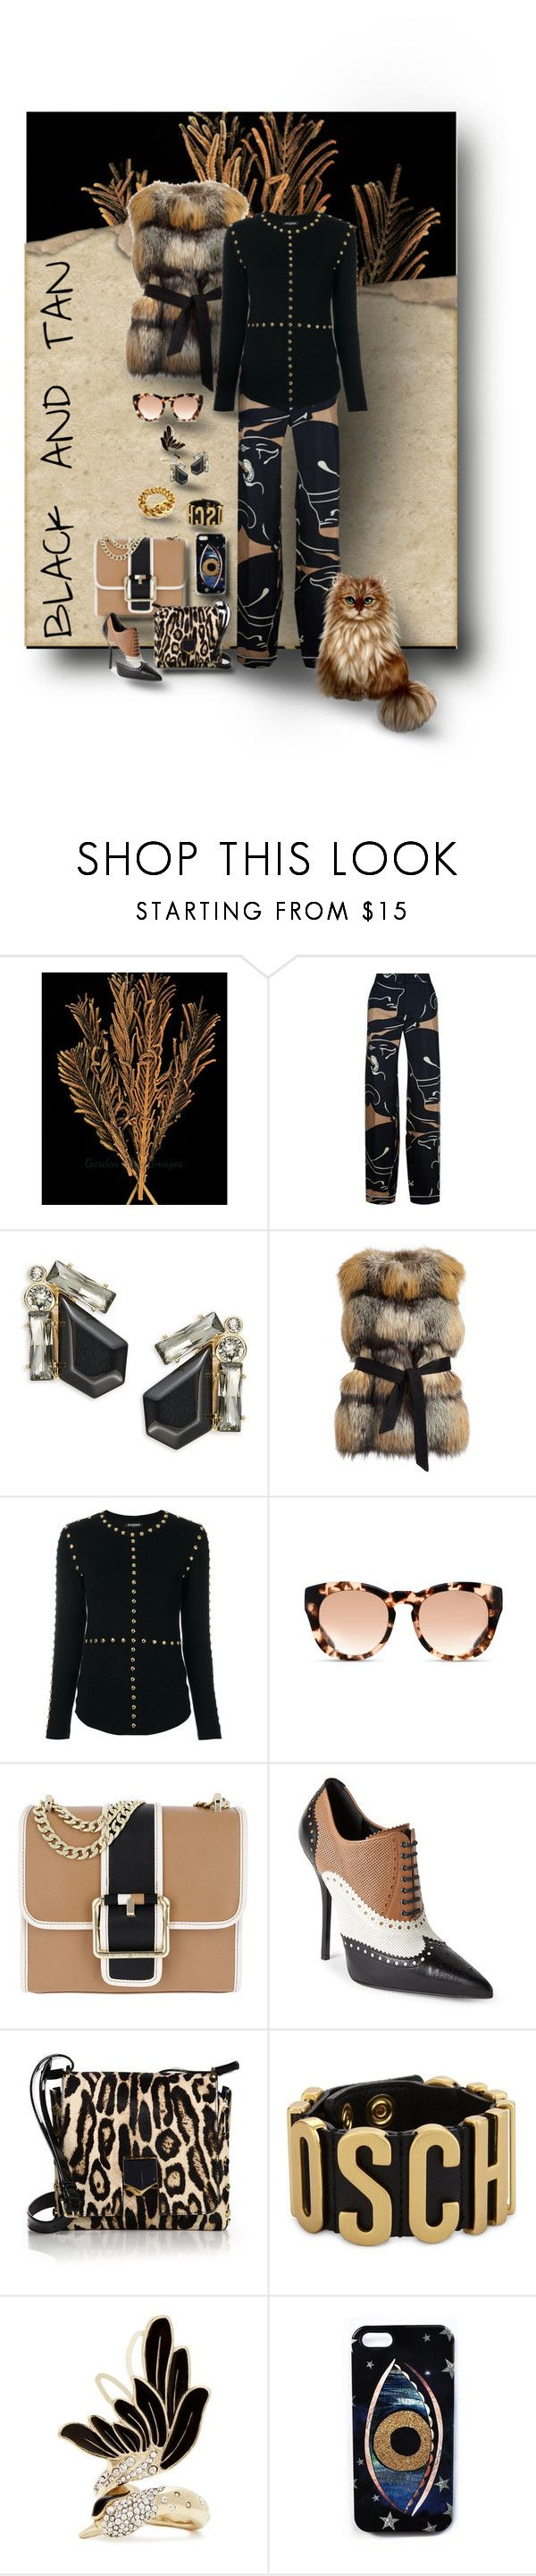 """""""THE LITTLE CAT COULDN'T HELP BUT WONDER WHAT KIND OF FUR THE VEST WAS MADE OF..."""" by hrhjustcuz ❤ liked on Polyvore featuring Valentino, Ted Baker, Gorski, Balmain, Michael Kors, Tommy Hilfiger, Gucci, Jimmy Choo, Moschino and Lanvin"""